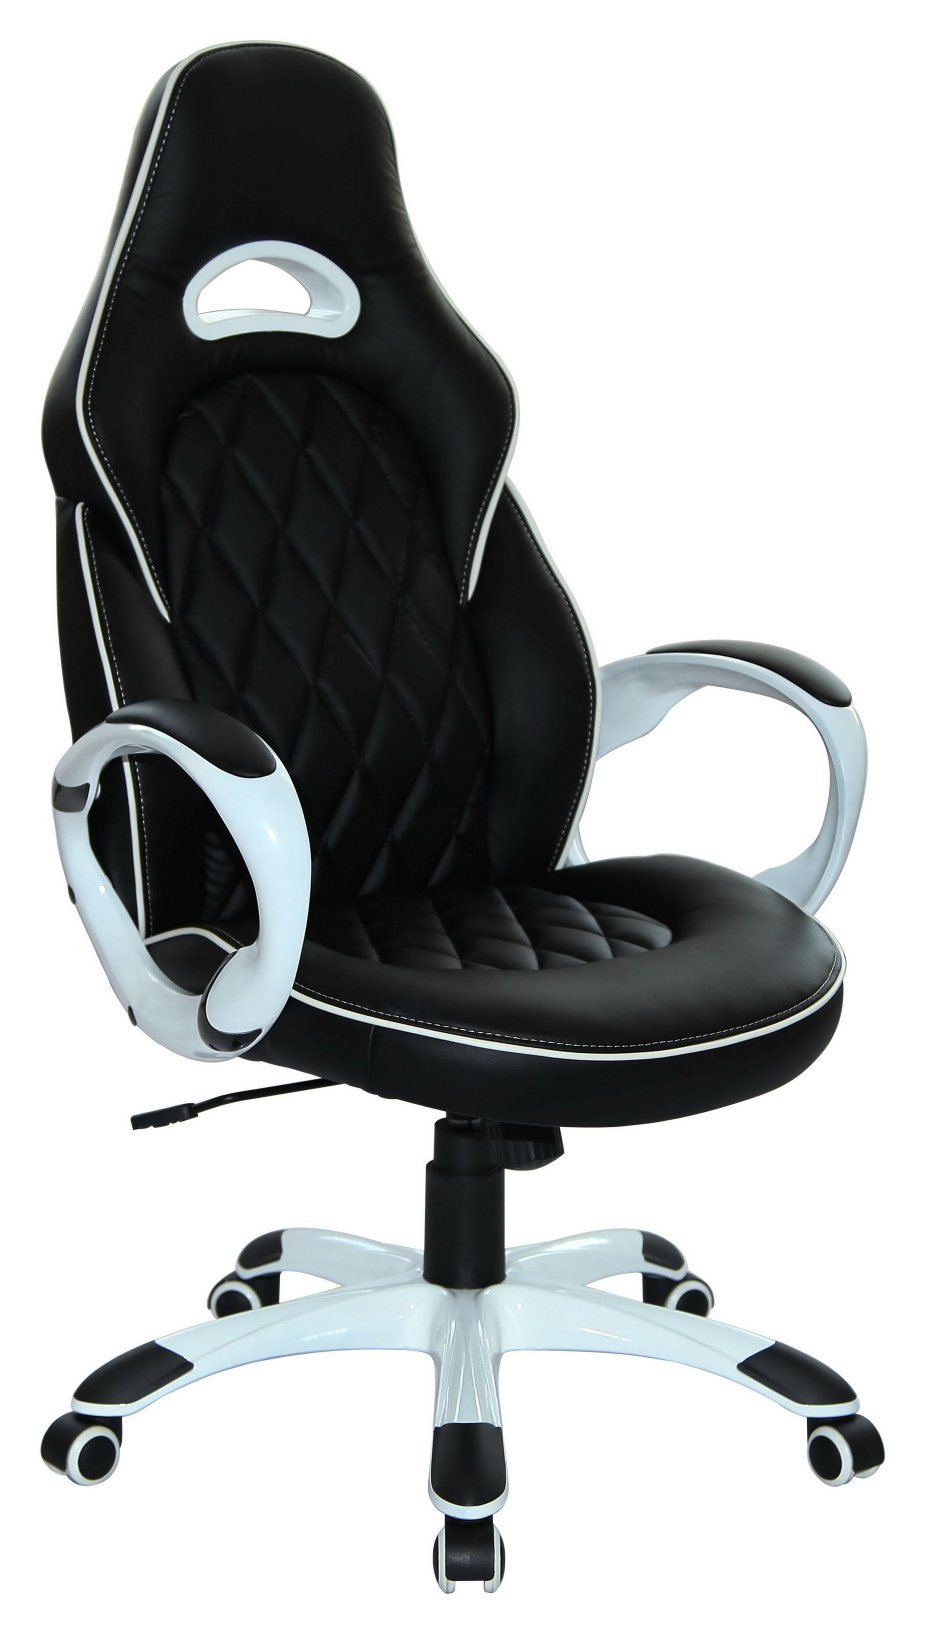 fauteuil du bureau le coin gamer. Black Bedroom Furniture Sets. Home Design Ideas